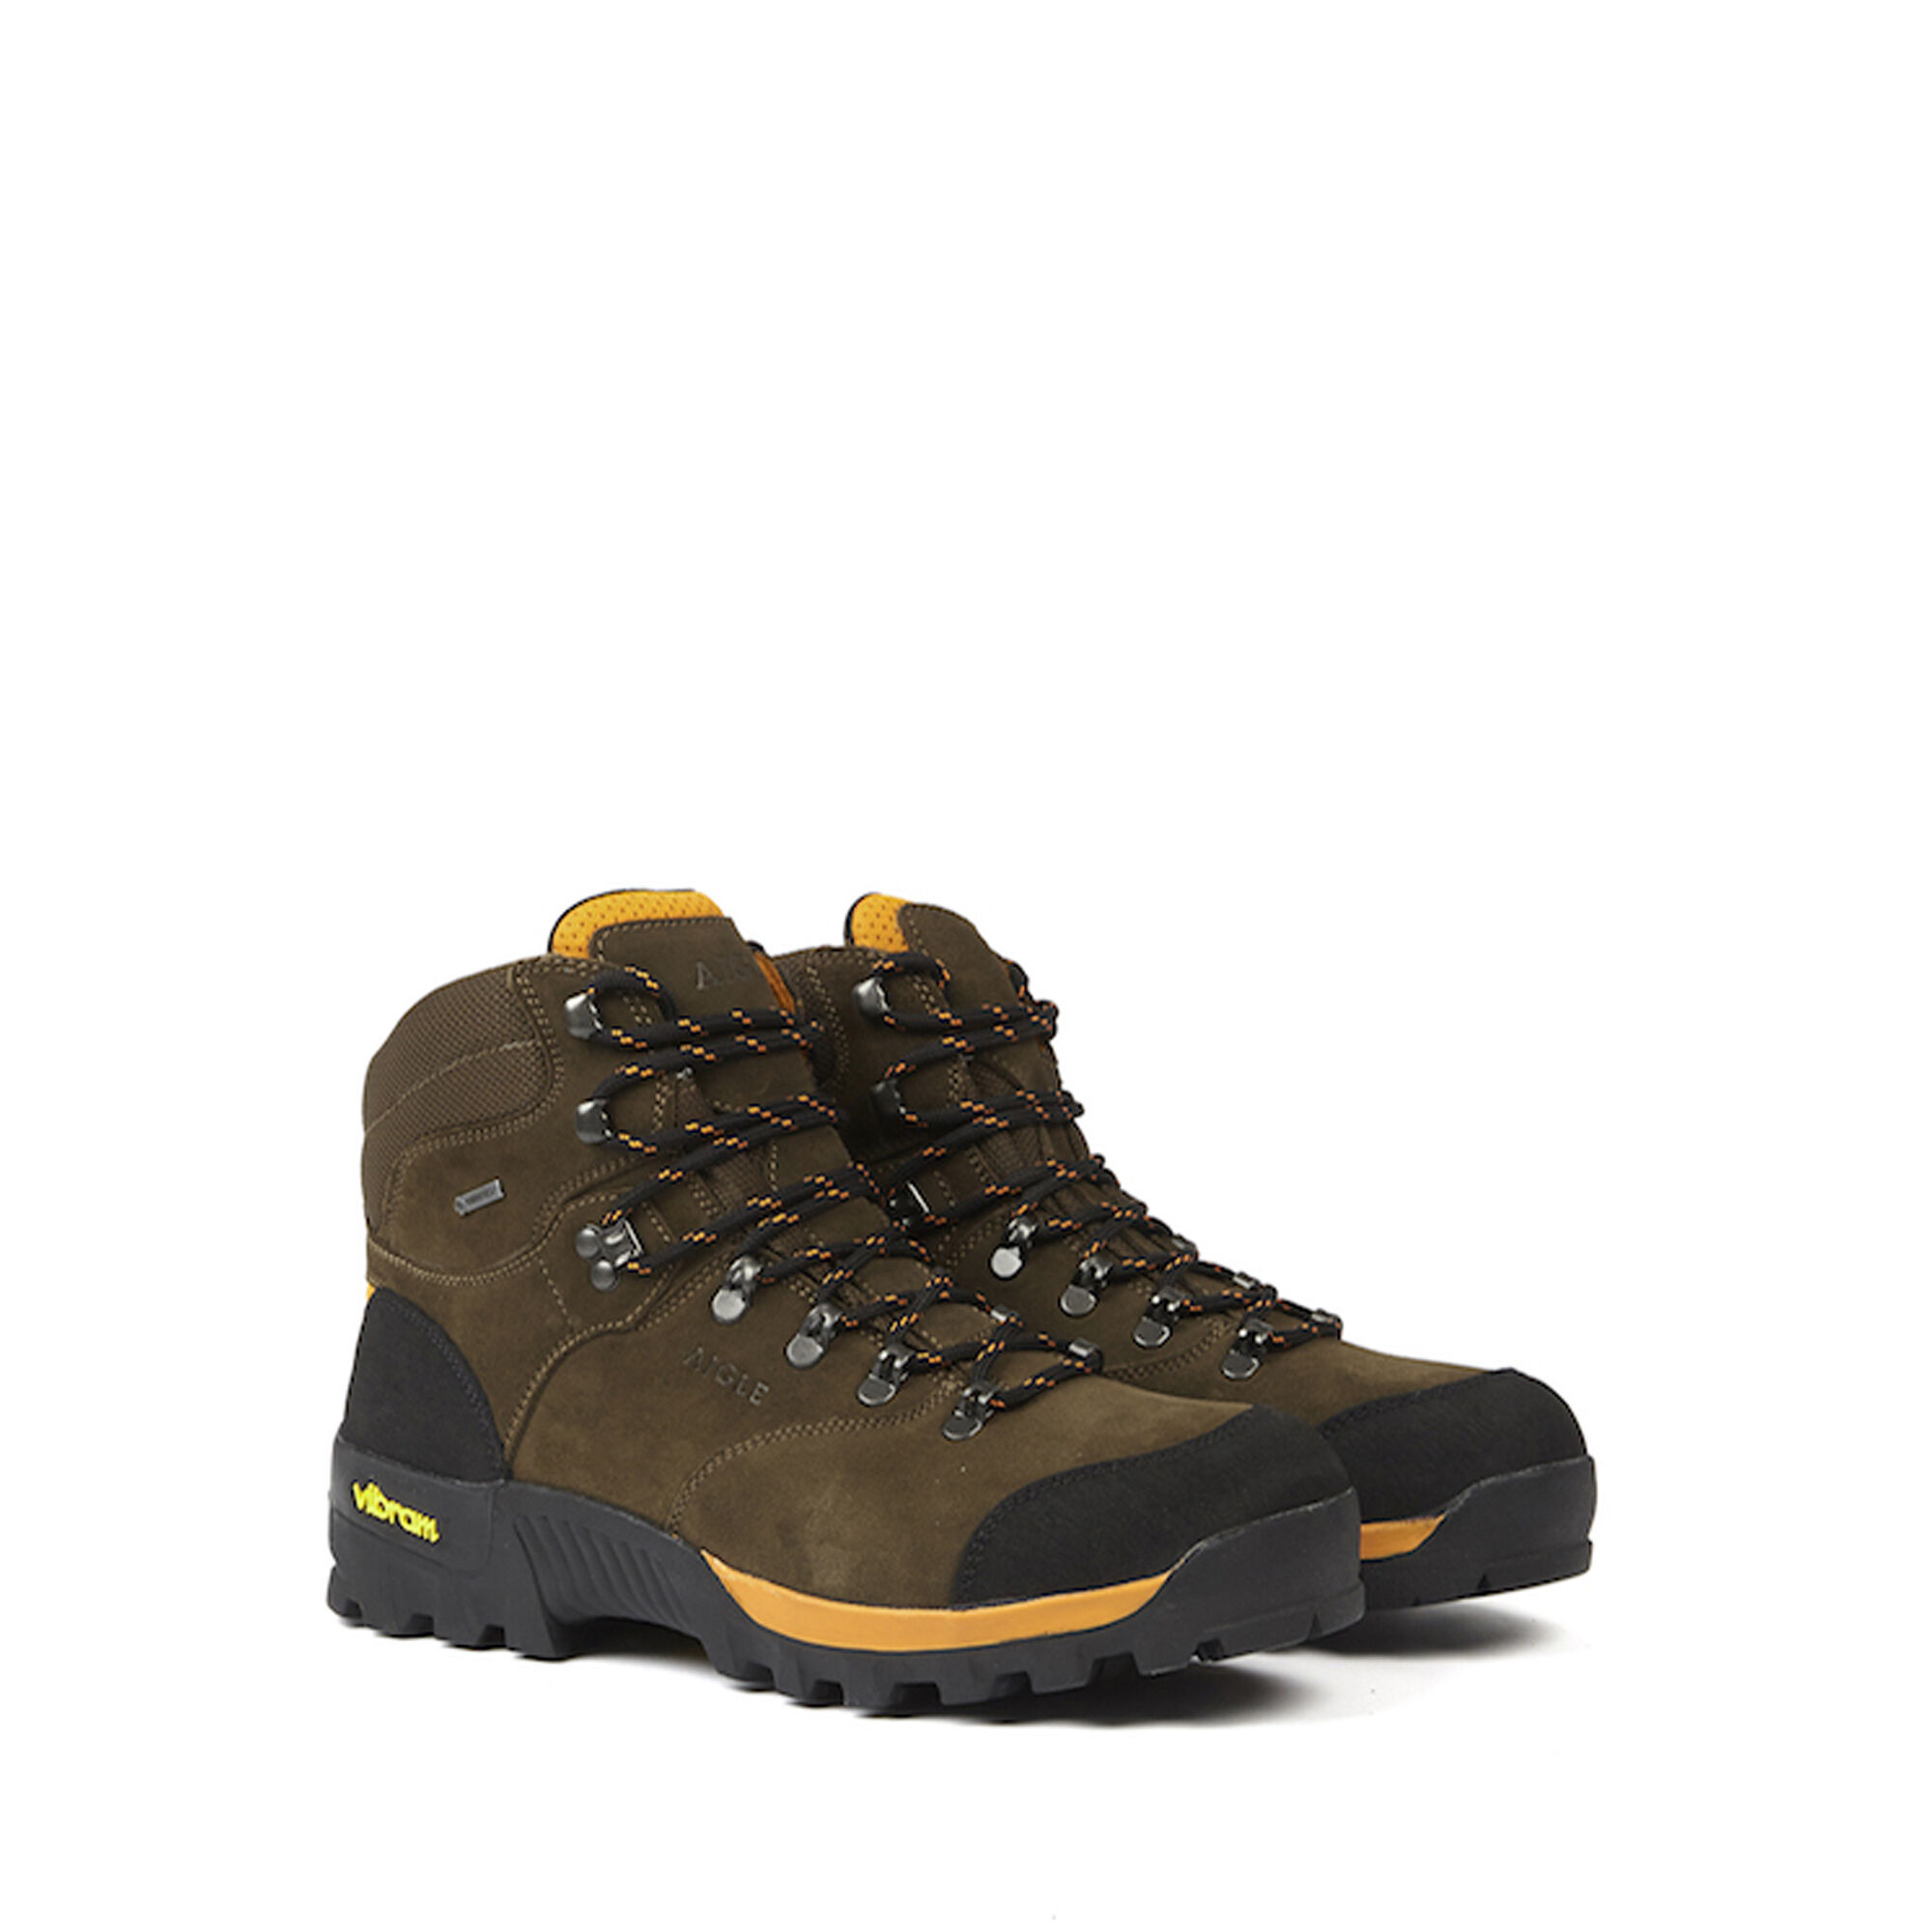 Cuir Homme Chaussures Aigle Homme Chaussures Homme wPUnBTx